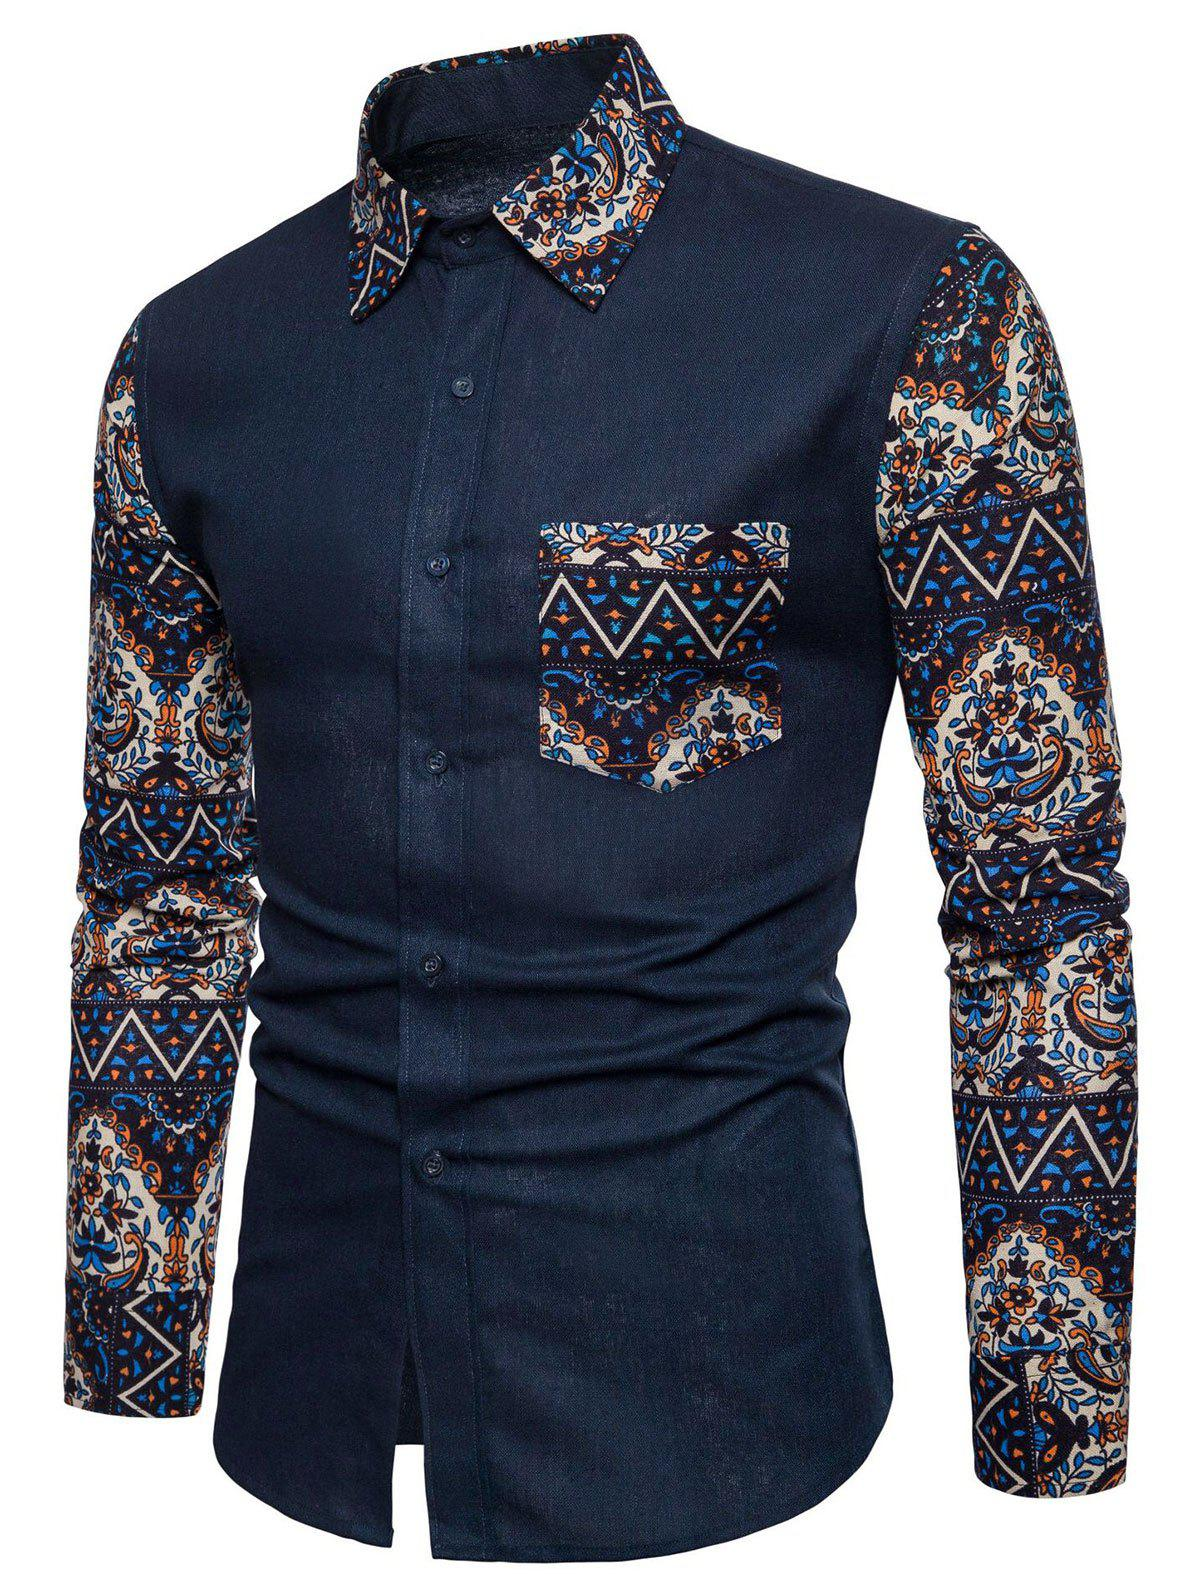 Buy Floral Blue Patchwork Button Up Long Sleeve Shirt